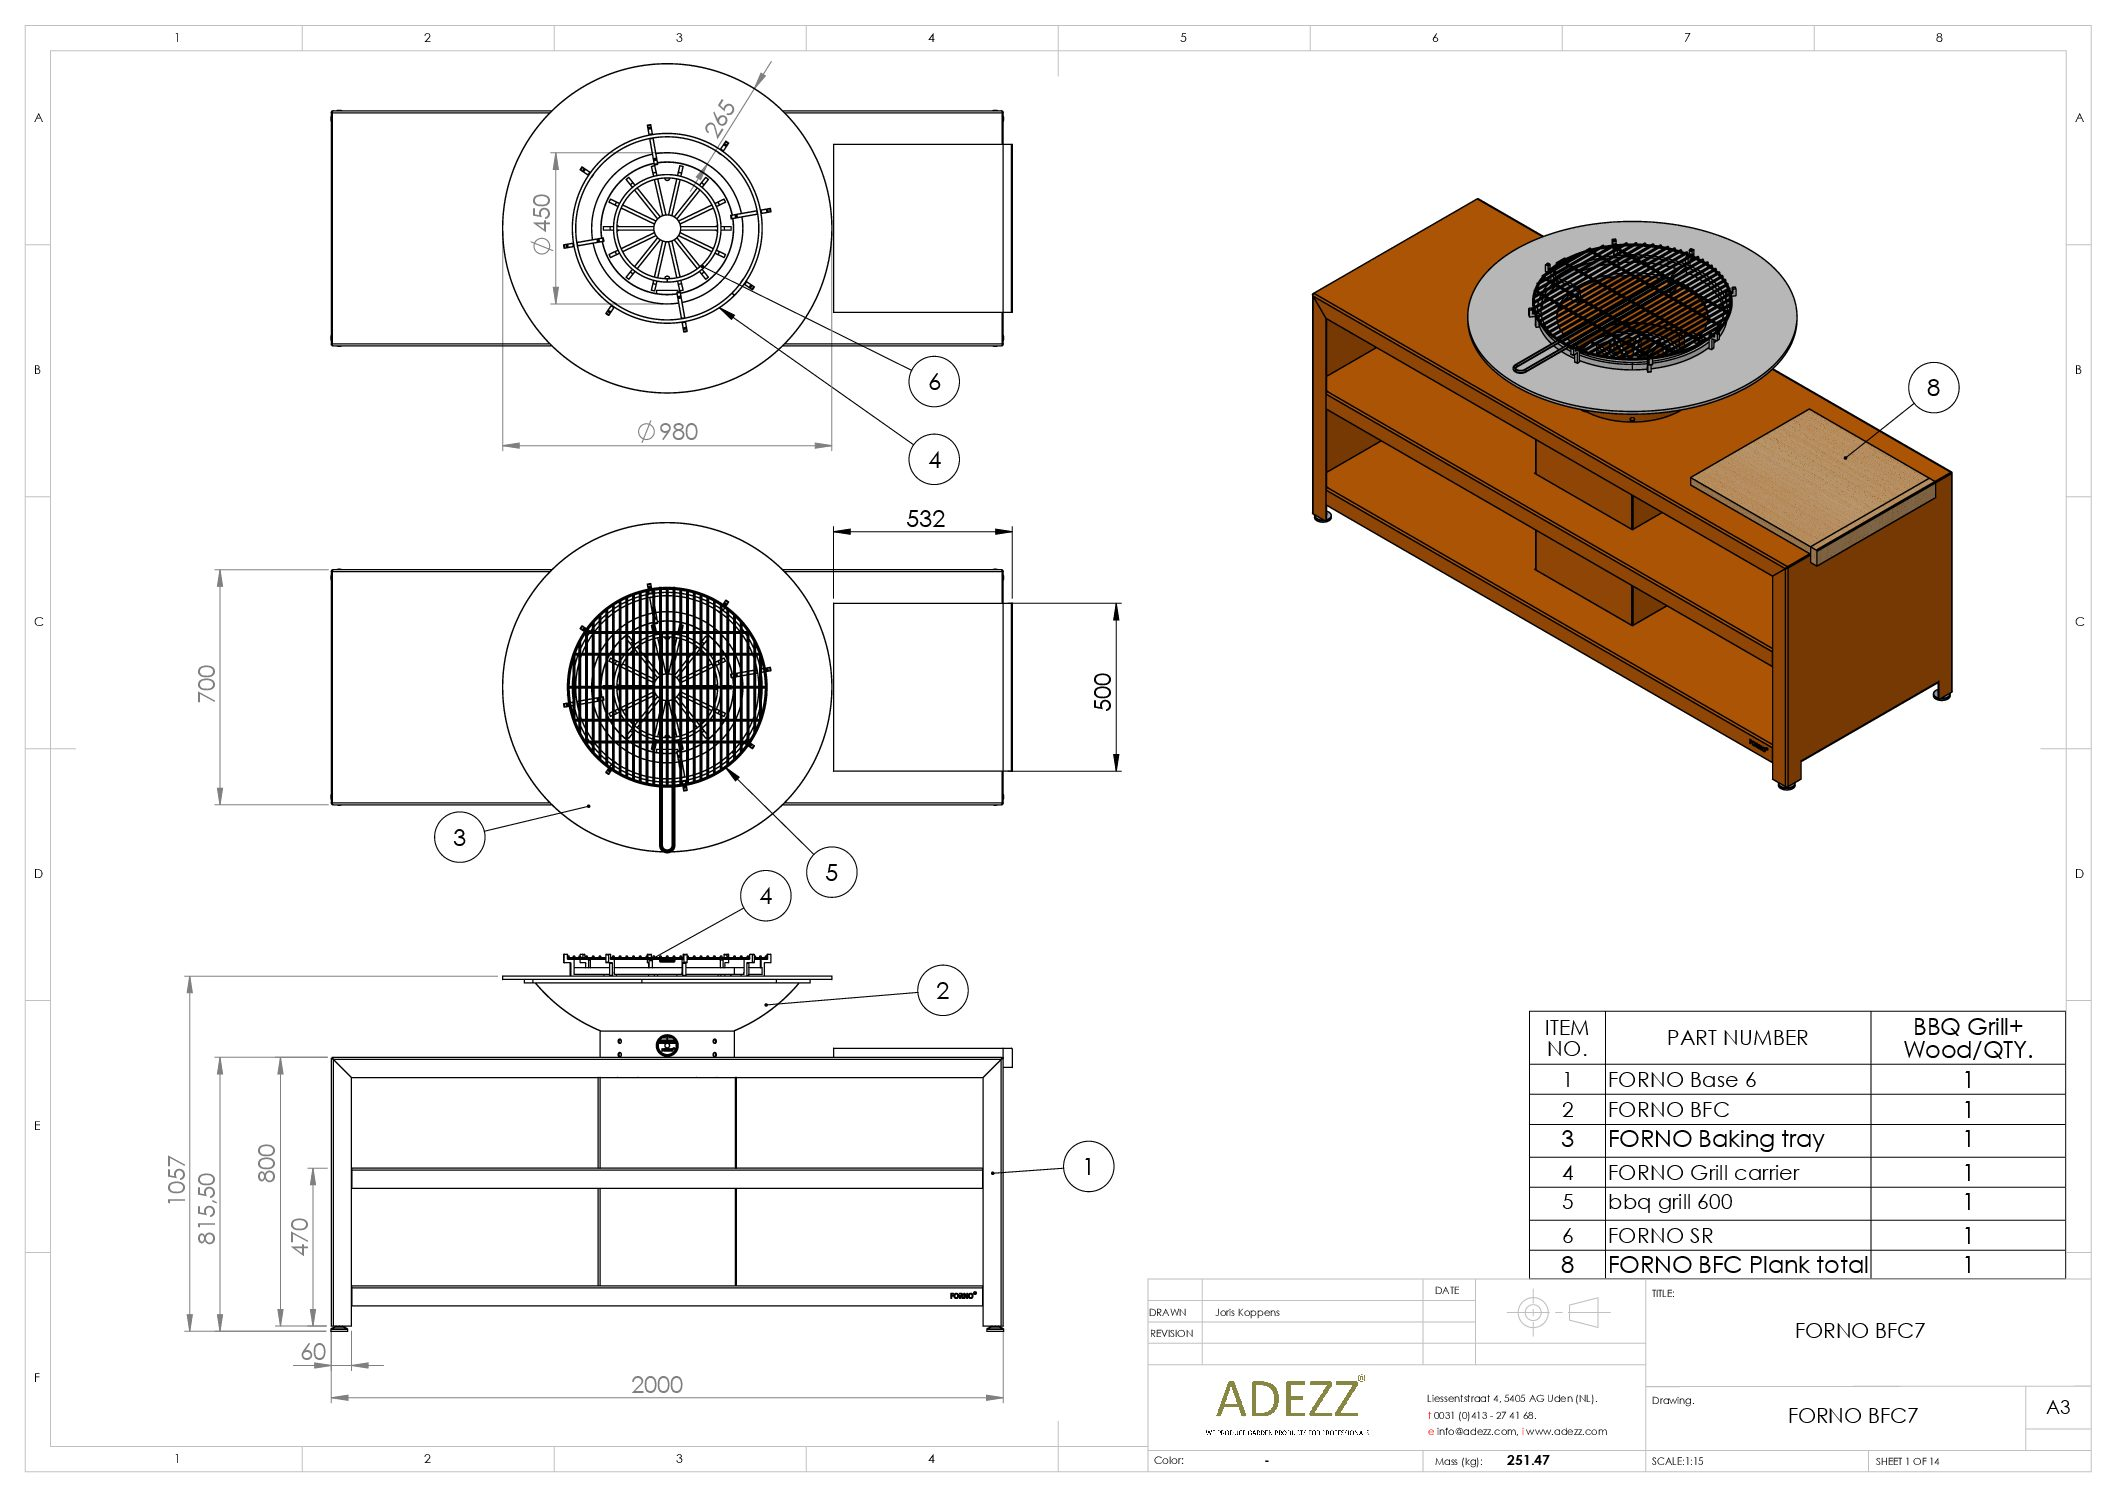 Forno Grill with Storage by Adezz 200x98x105cm Techinical Drawing